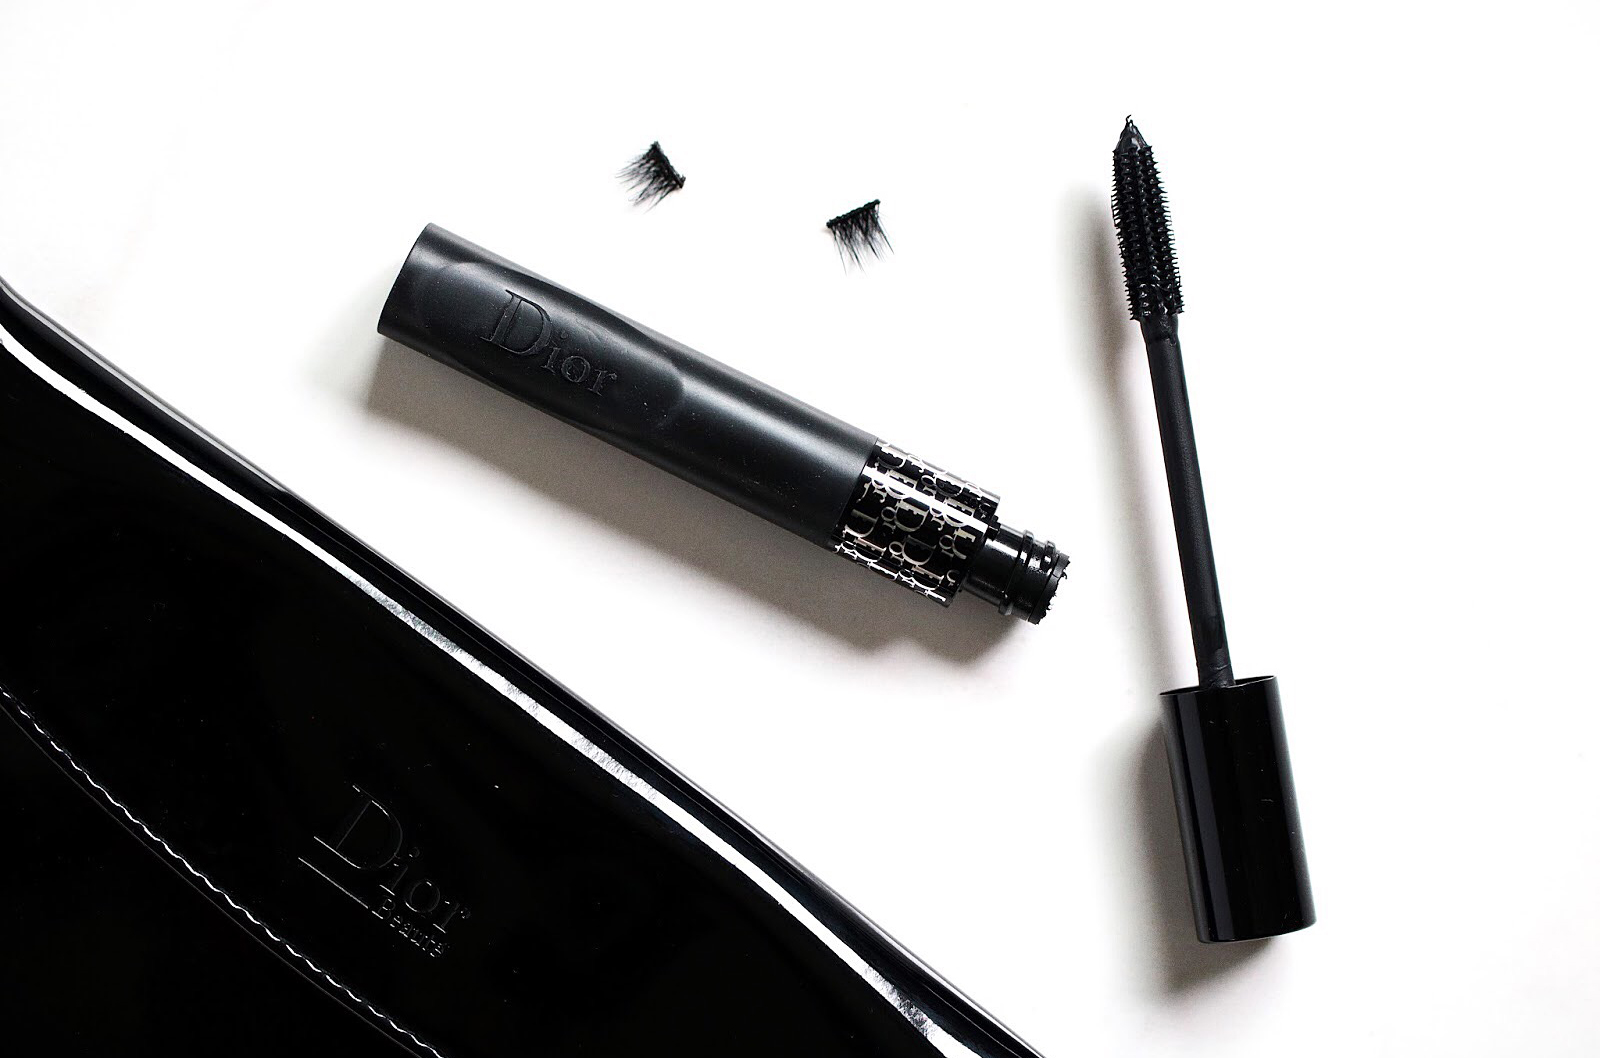 dior diorshow pump'n volume mascara avis test